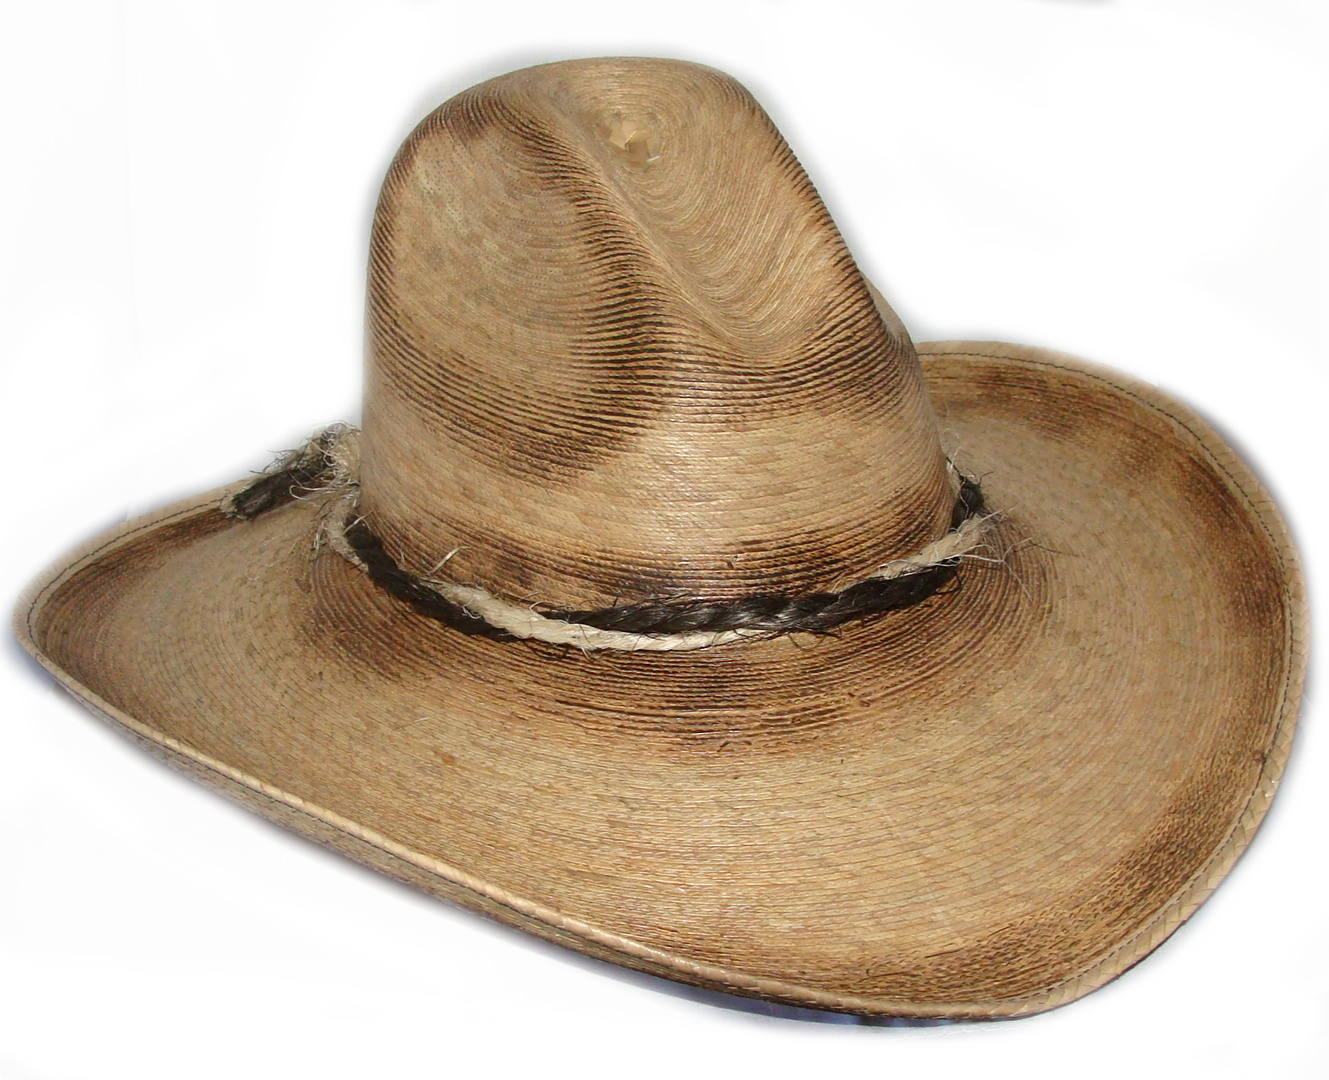 Cowboy Hat Images Sahuayo Palm Straw Cowboy Hat